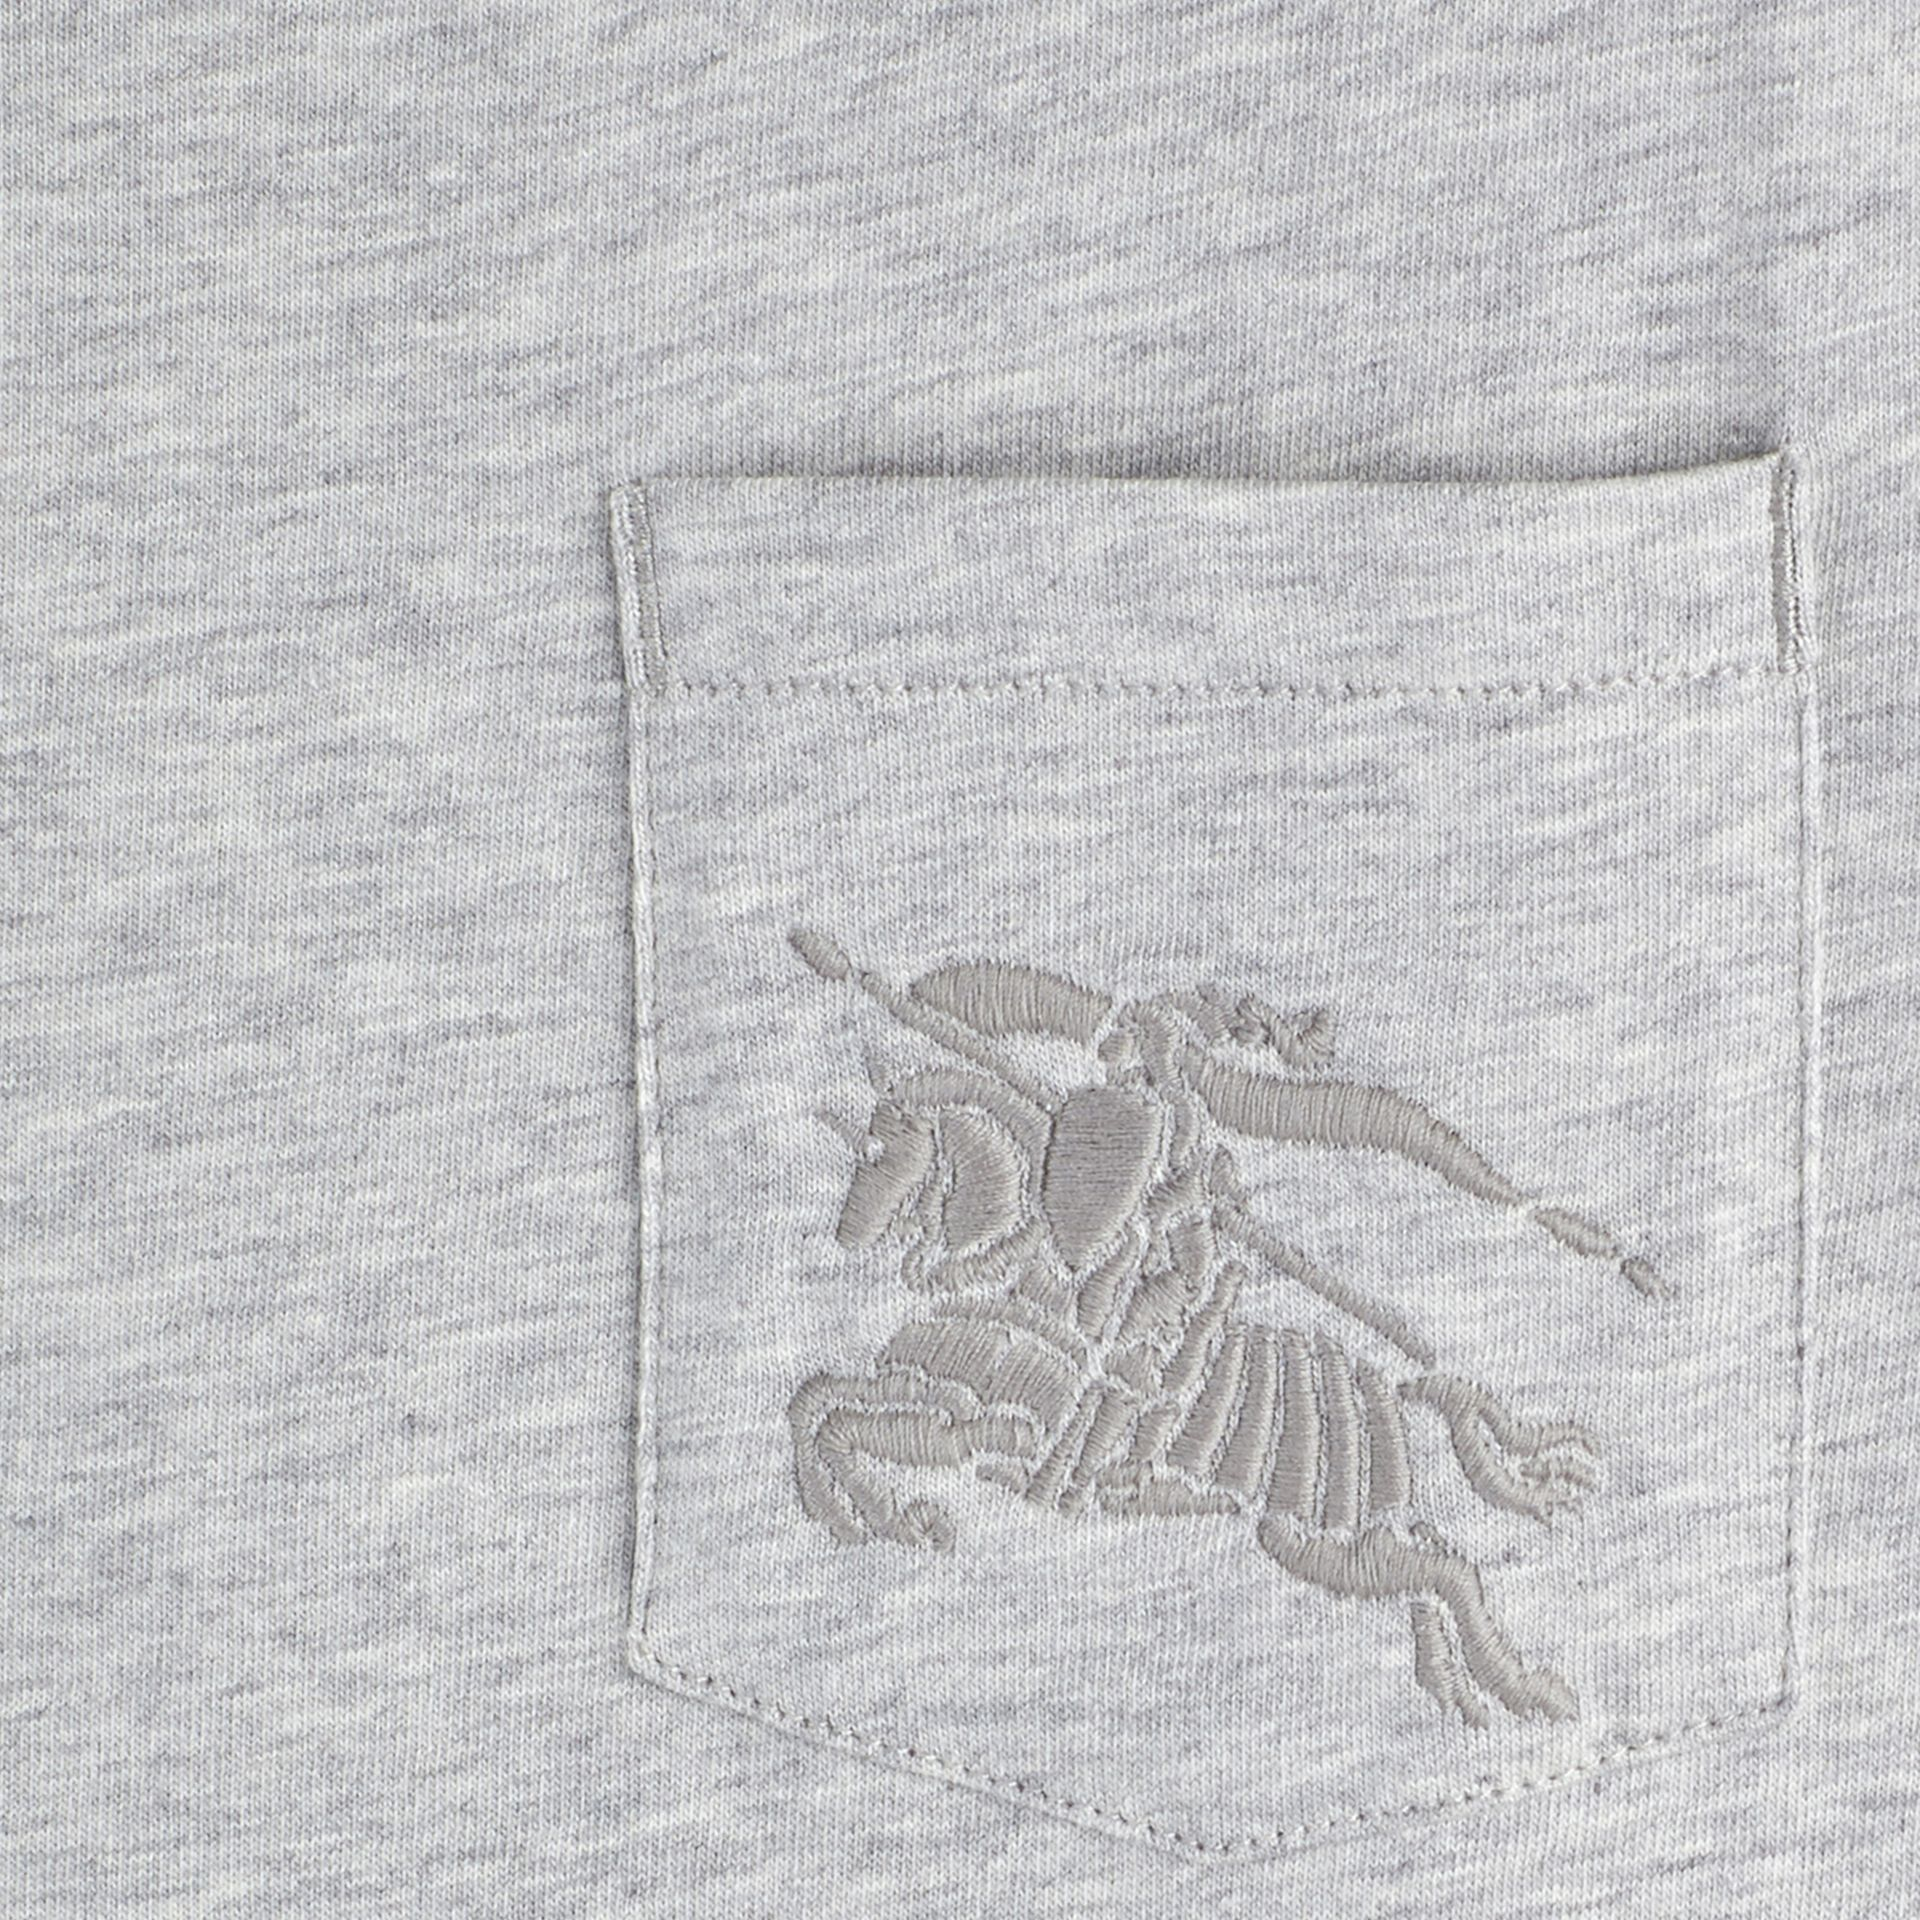 Grey melange Crew Neck Cotton T-shirt Grey Melange - gallery image 2